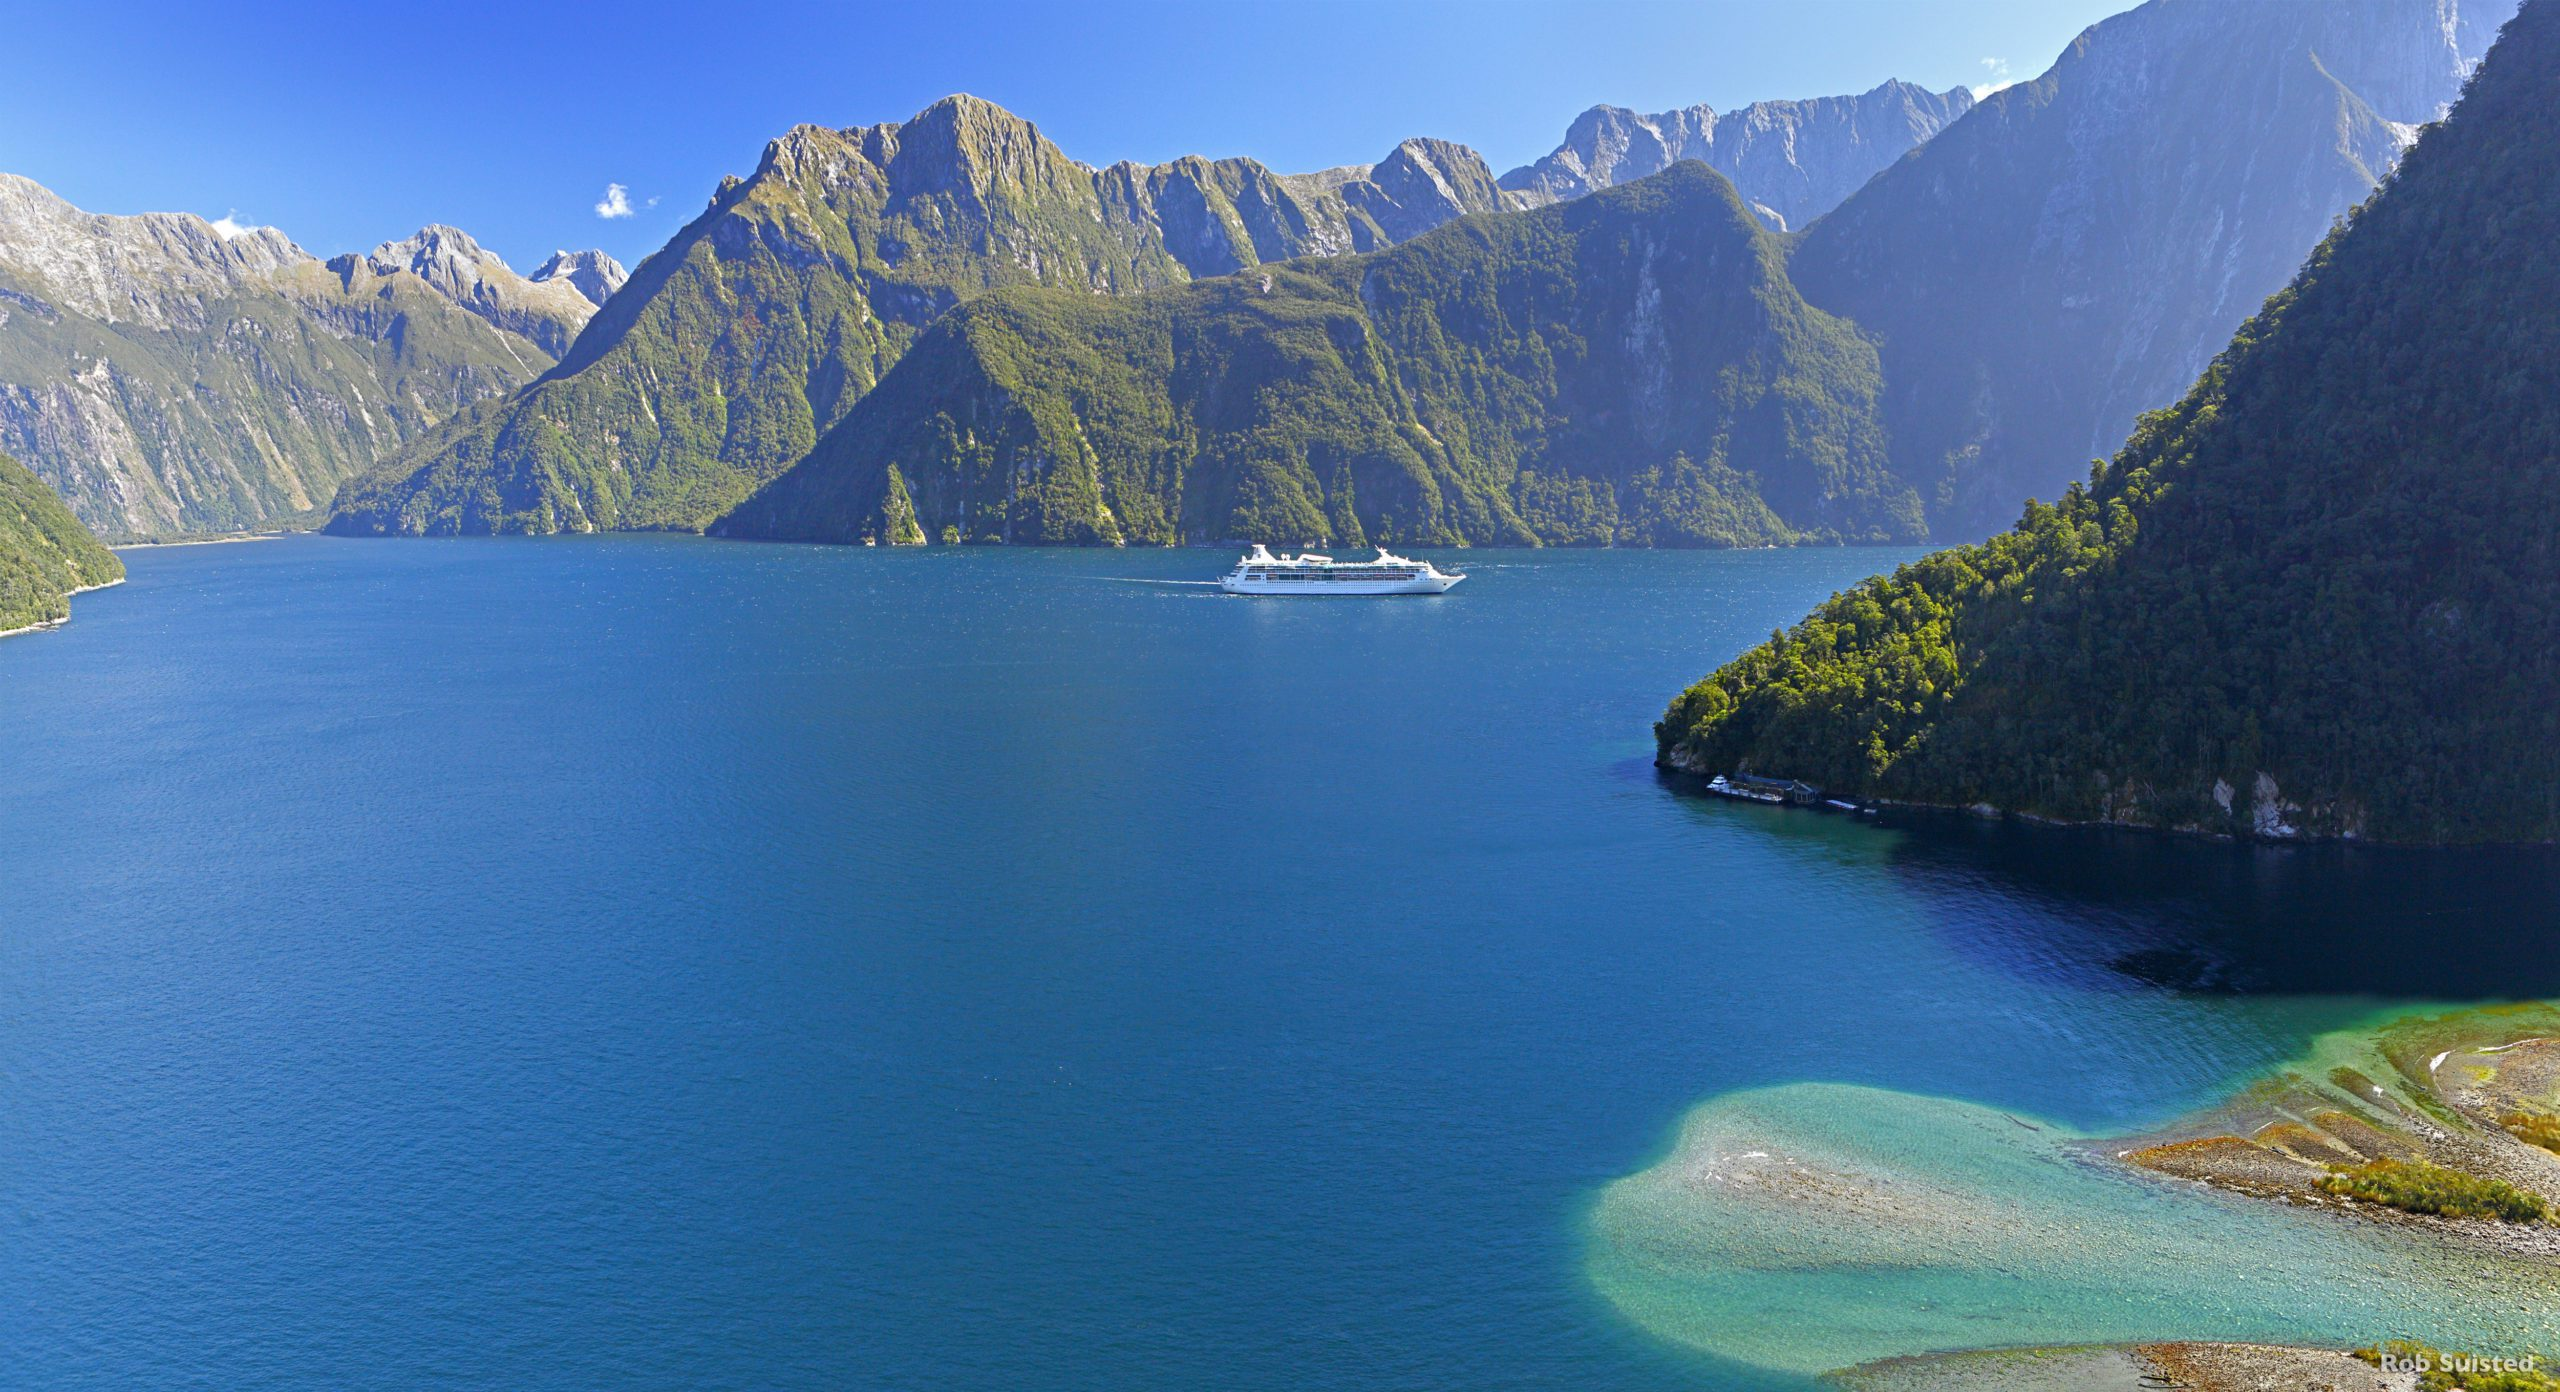 A cruise boat in the Milford Sound